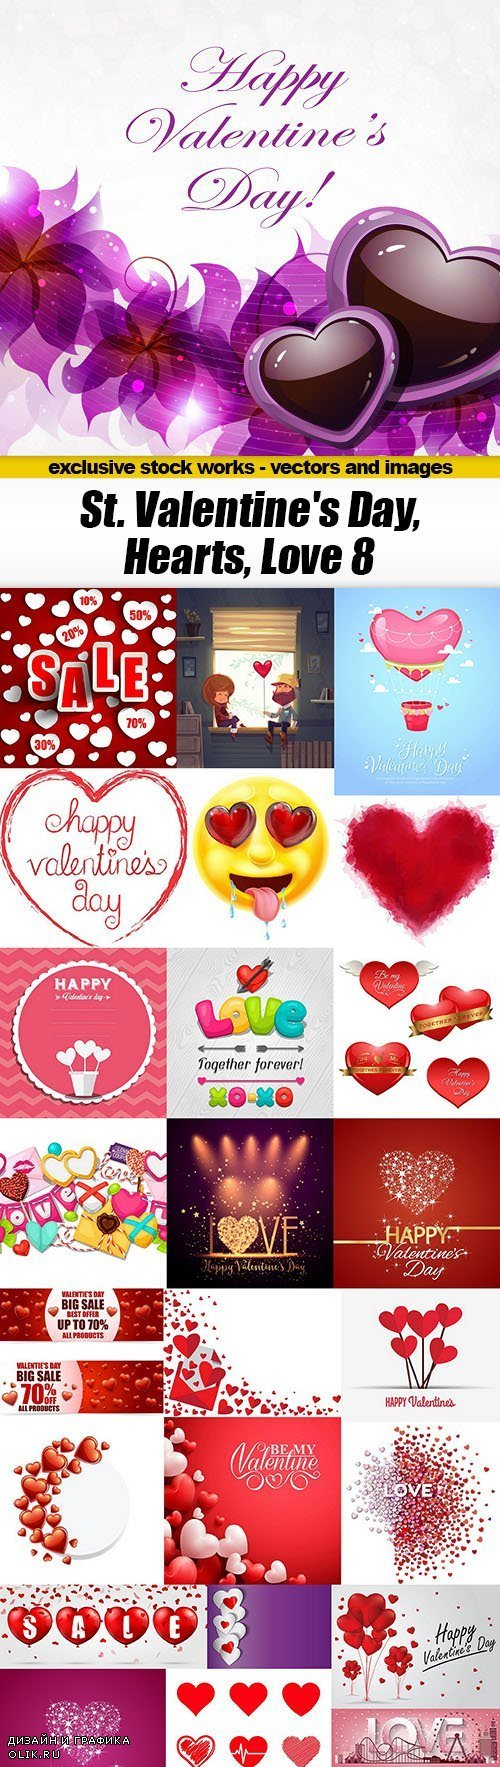 St. Valentine's Day, Hearts, Love #8, 25xEPS